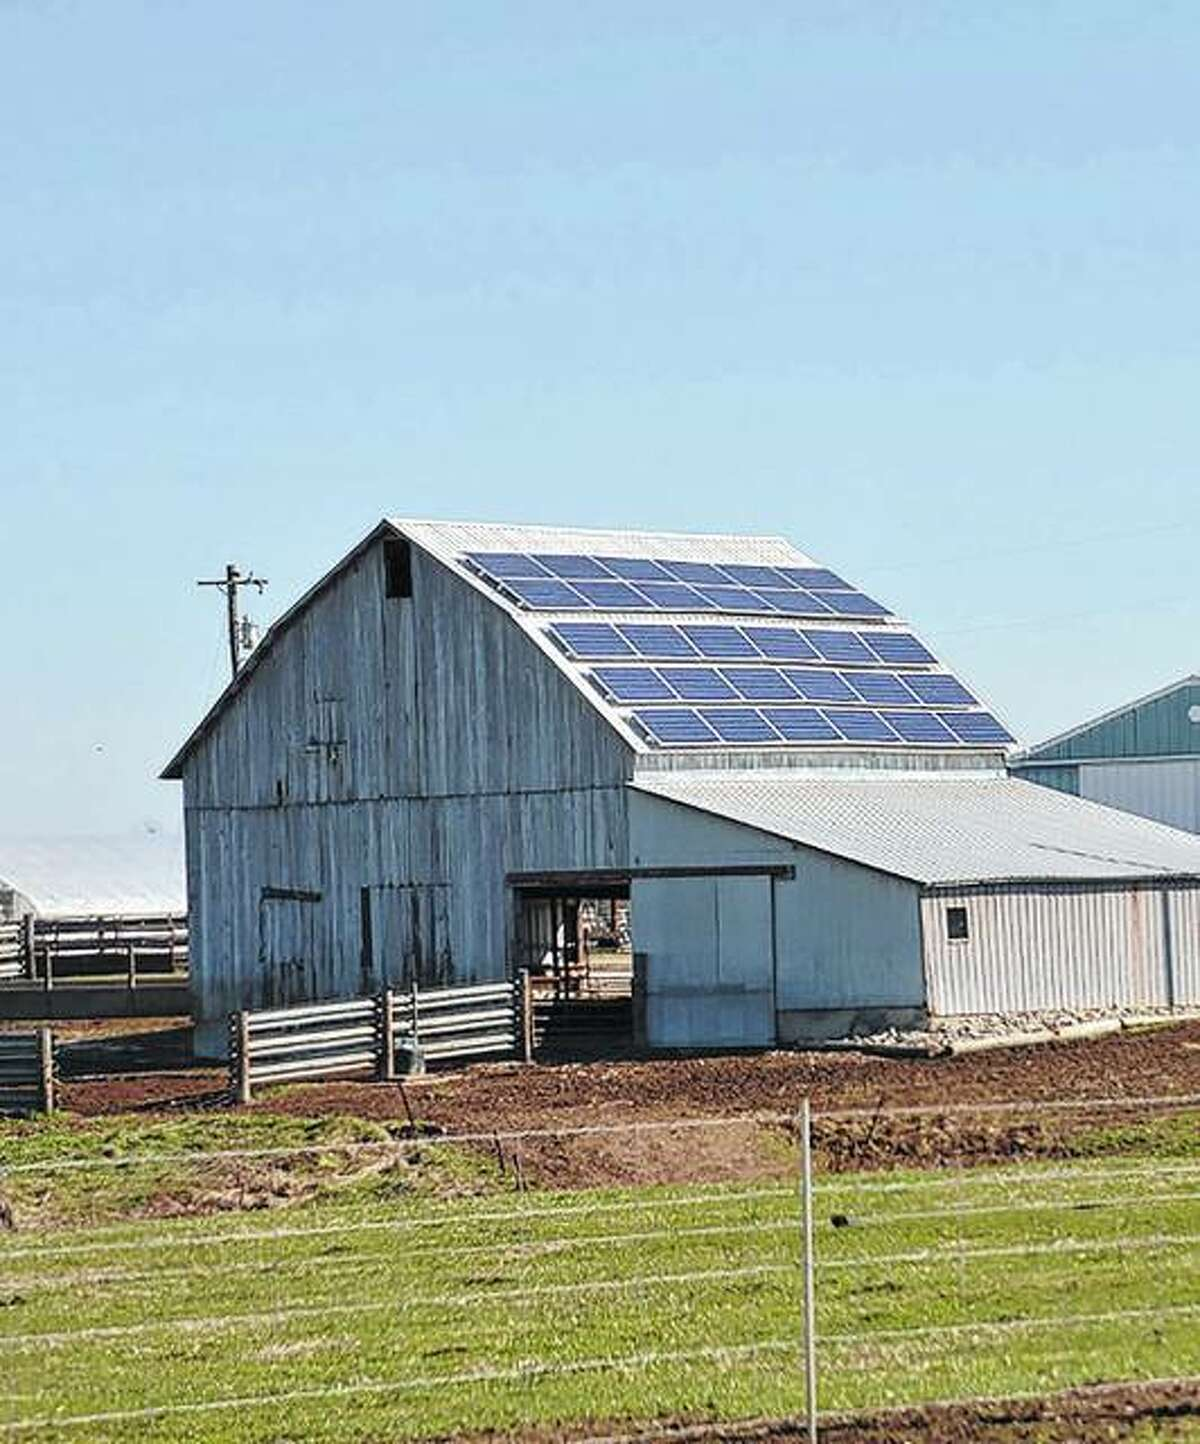 A solar array can be seen on a barn at Rhodes Farm on Illinois Route 108 in Macoupin County. It faces south, collecting sunlight and converting it into usable energy for the farm.